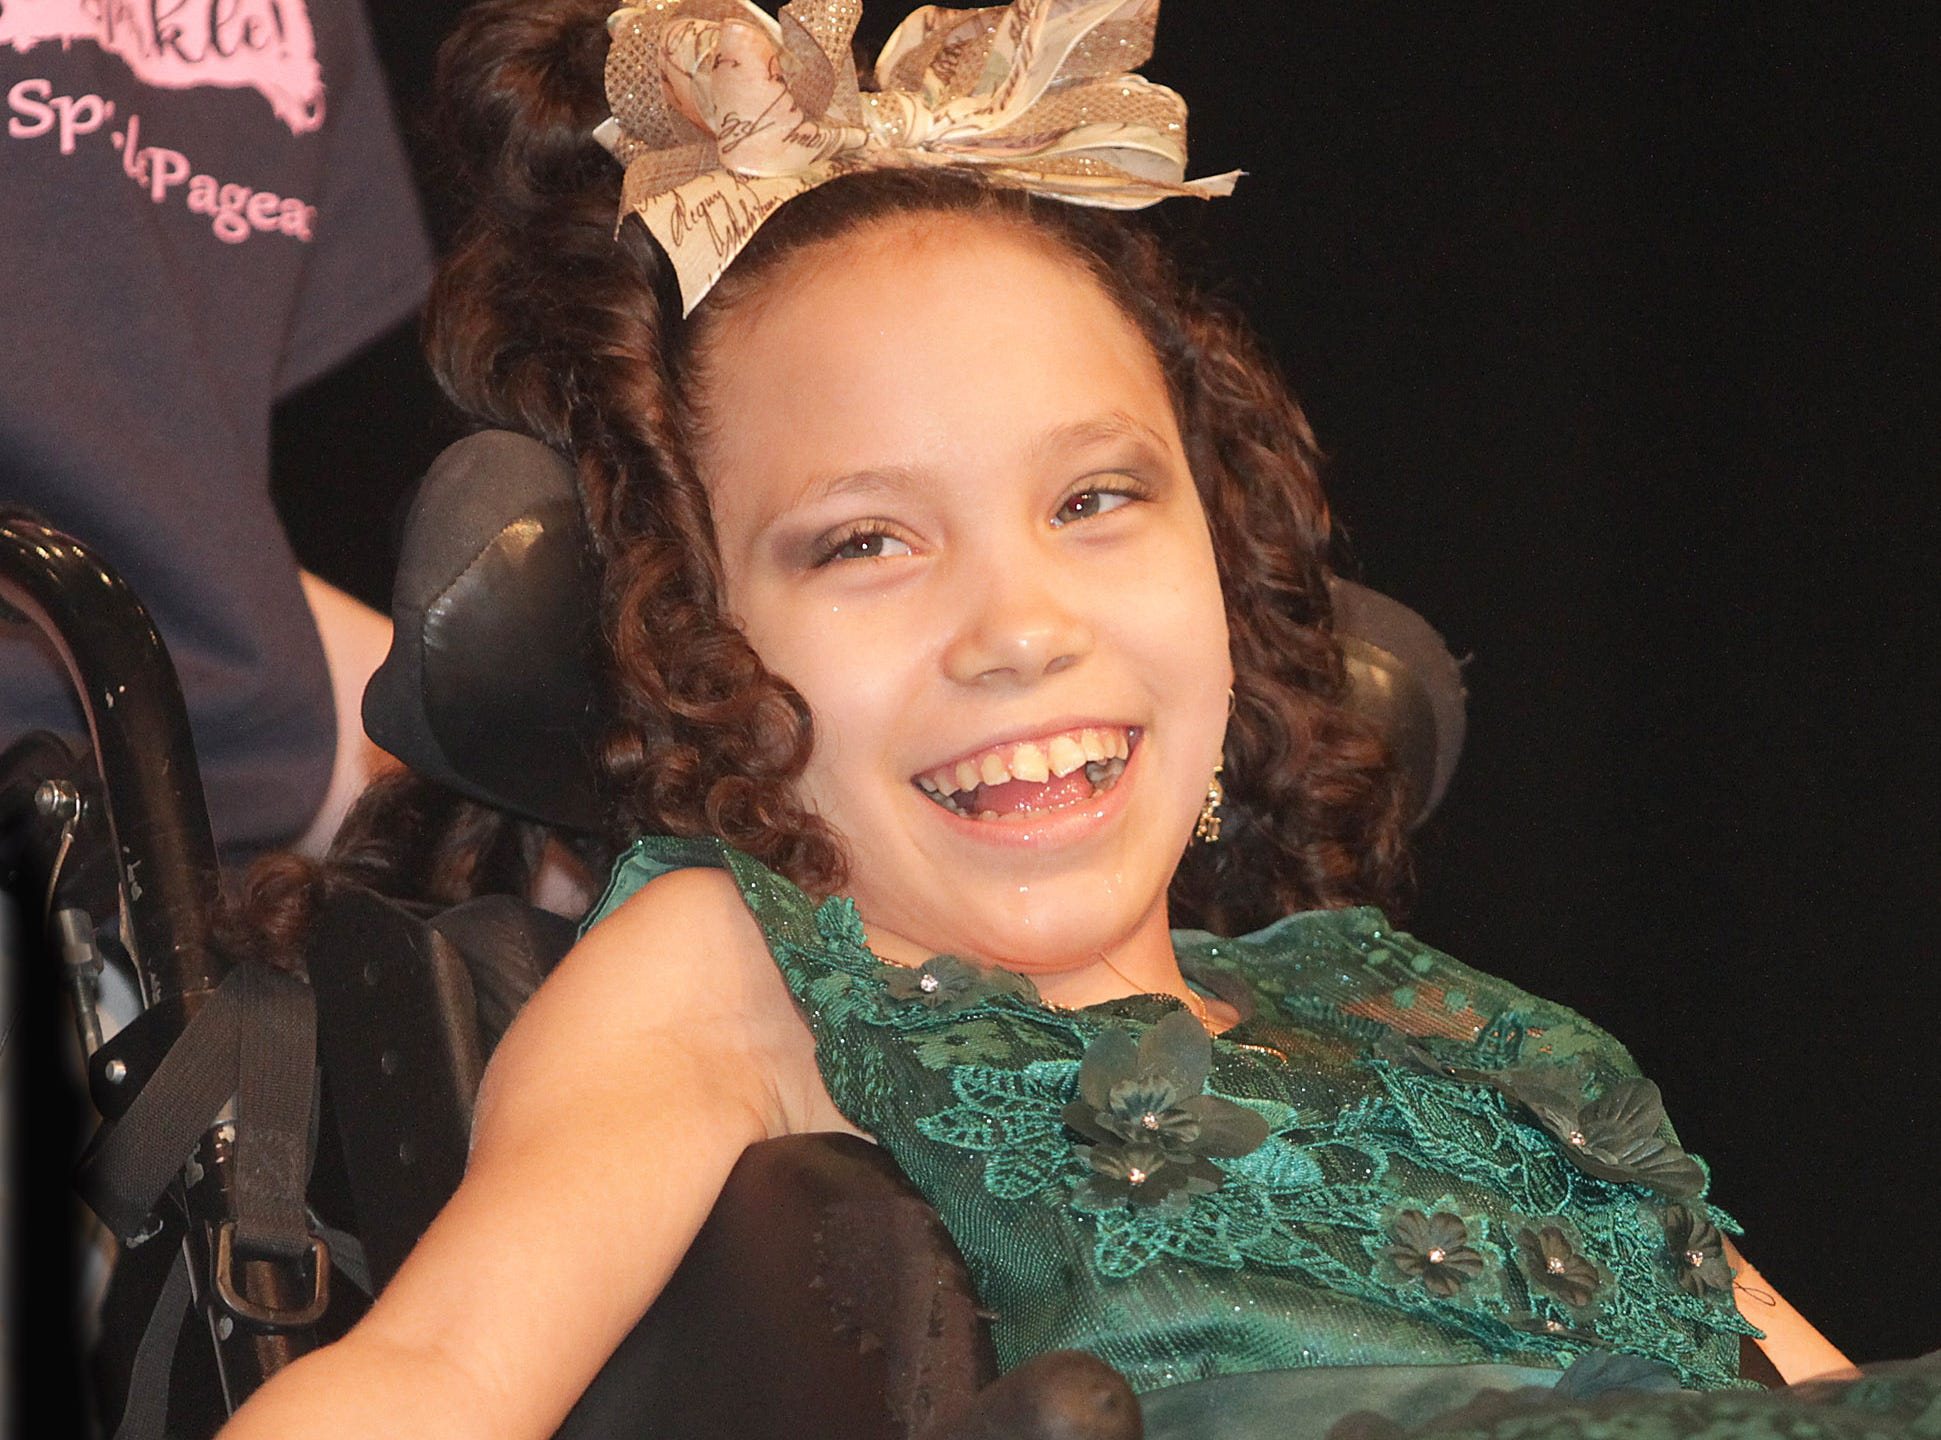 Kylee Abrams (12) smiles big as she enjoys being in The Sparkle Pageant at Pope John Paul II High School on Saturday, March 30, 2019.